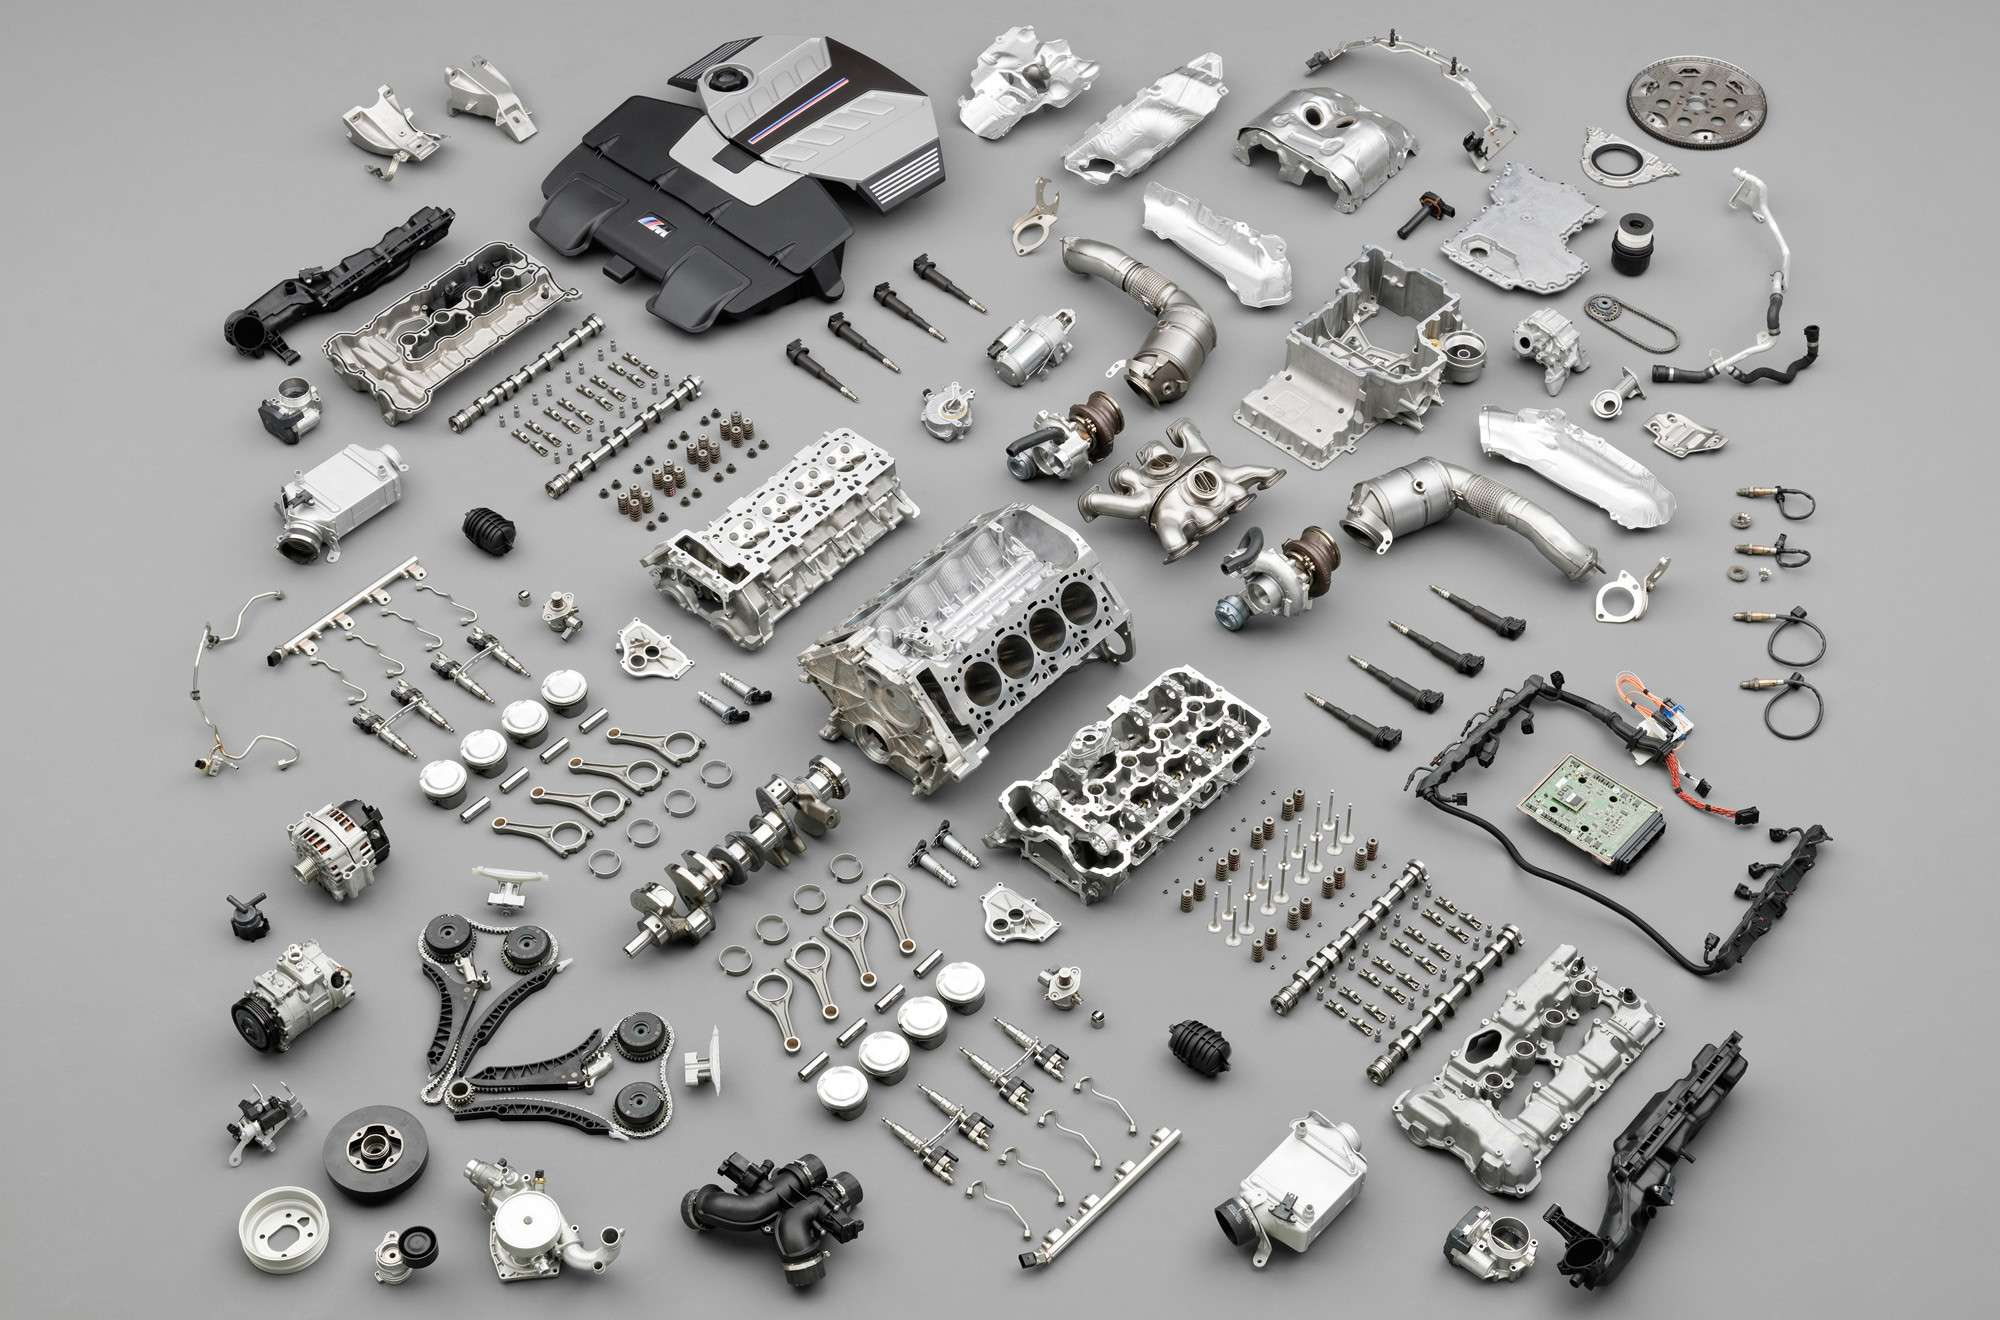 Basic Engine Parts | Component parts of internal combustion engines